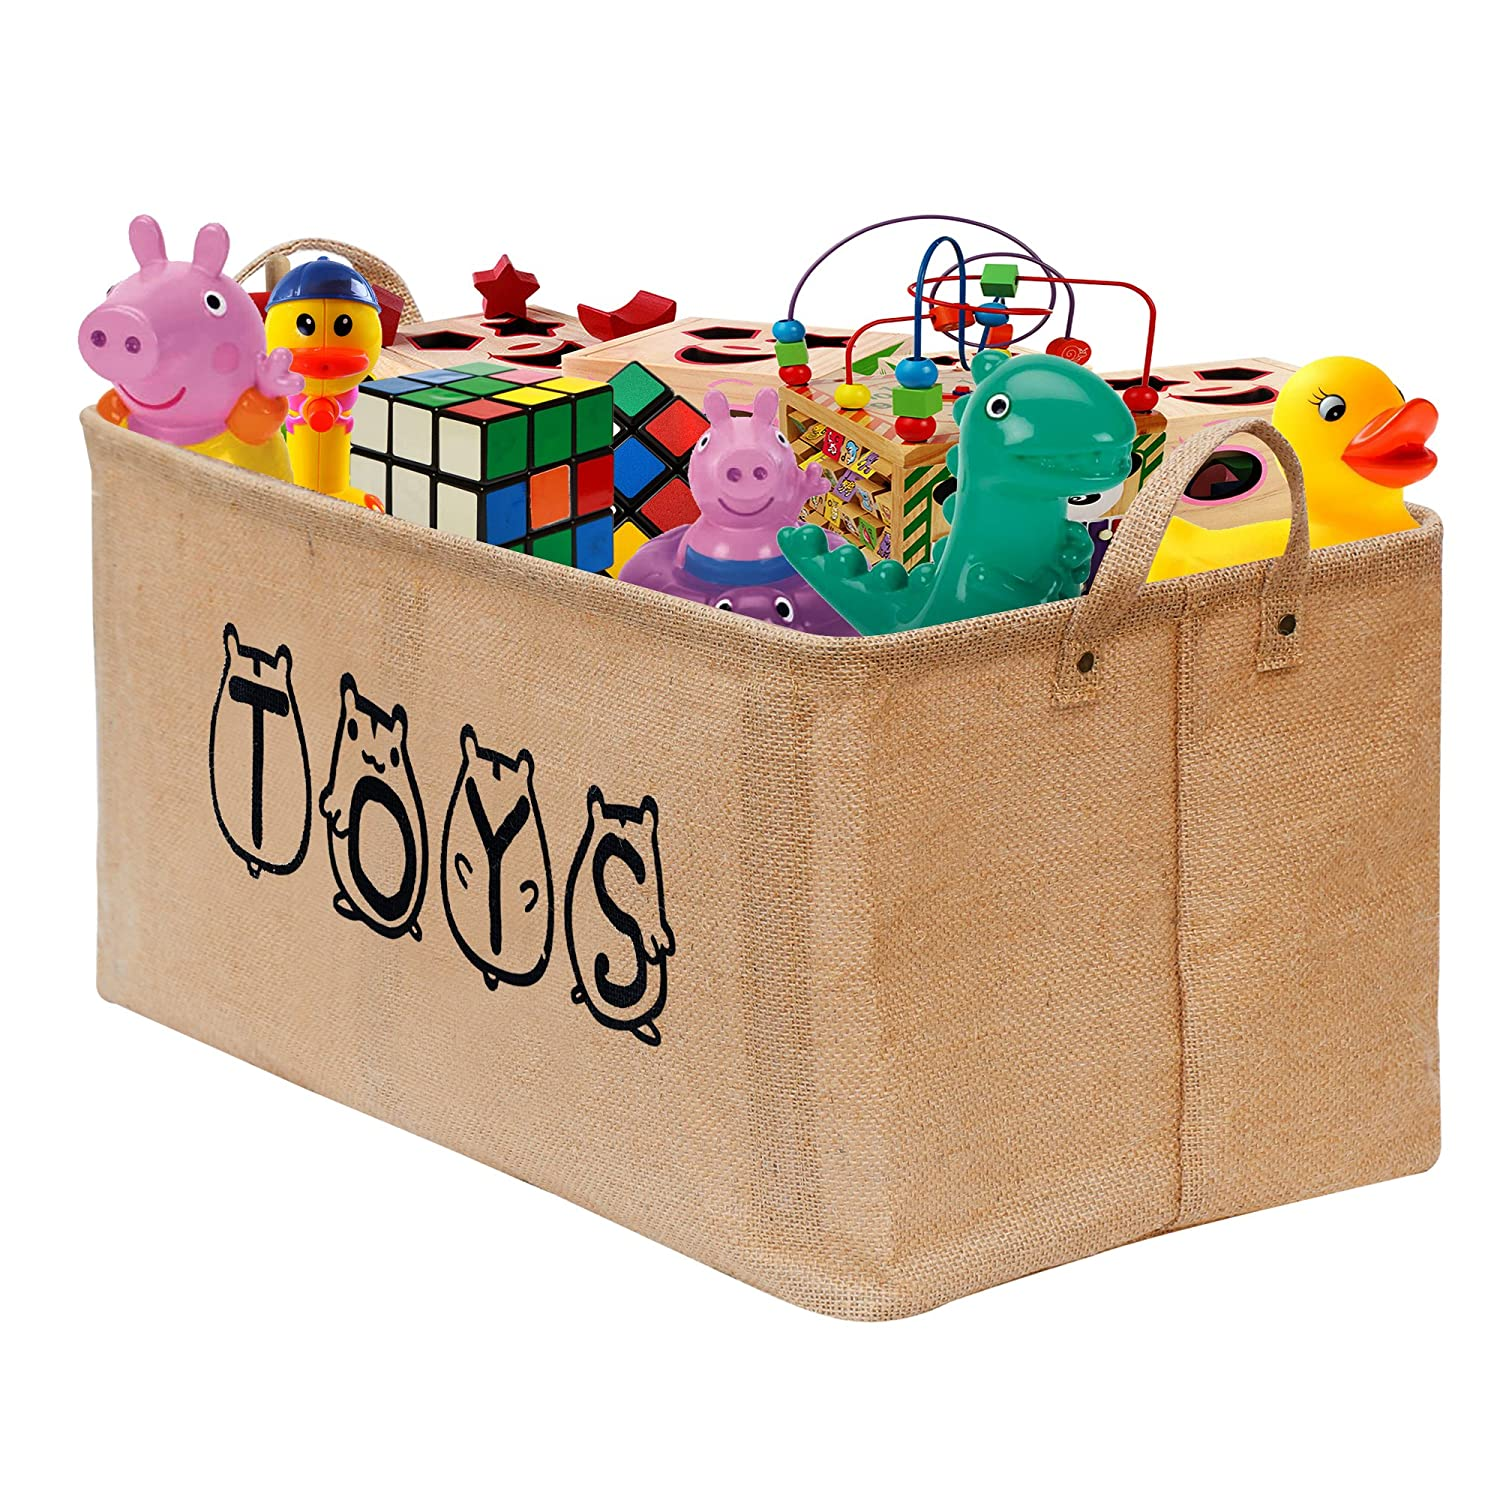 Gimars 20 Jute Storage Basket Bin Chest Organizer - Perfect for Organizing Toy Storage, Baby Toys, Kids Toys, Dog Toys, Baby Clothing, Children Books, Gift Baskets